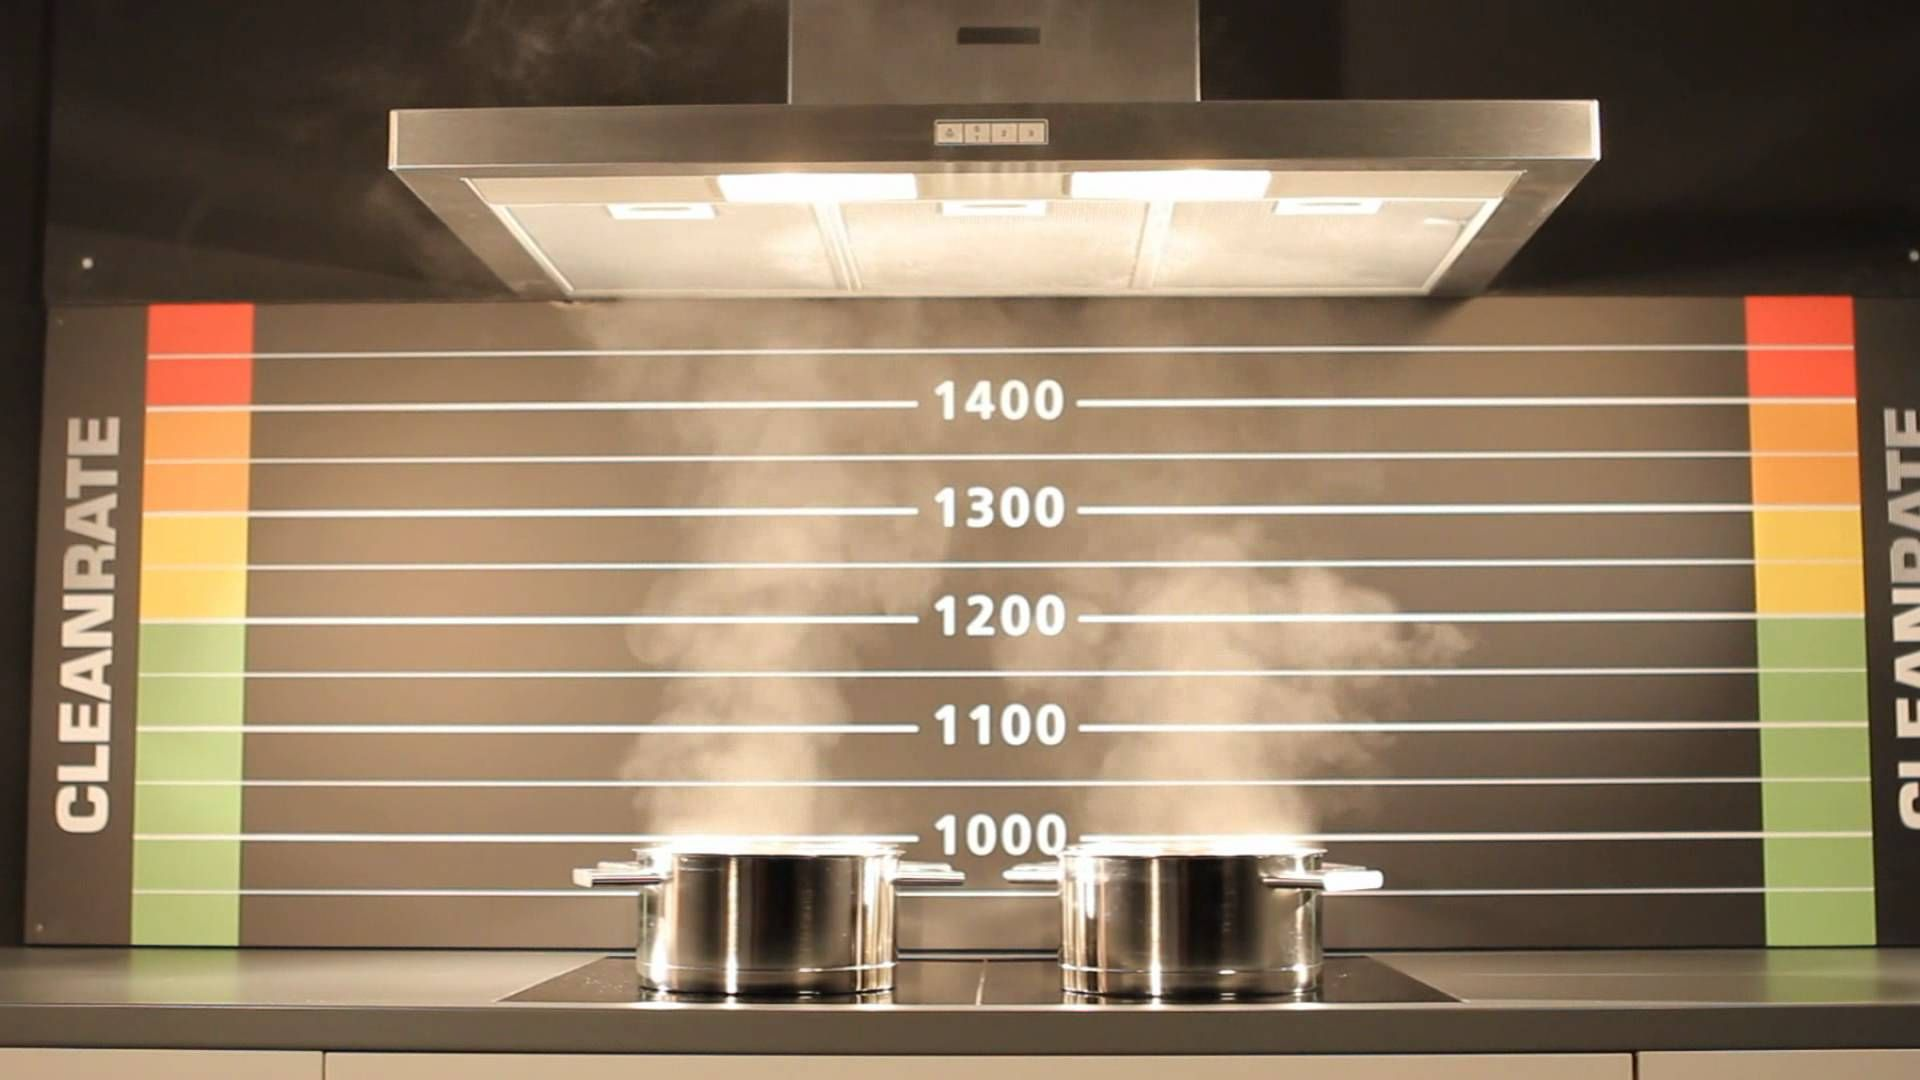 Bora Herd Test Clean Rate Testing Systems For Bora Traditional Rangehood